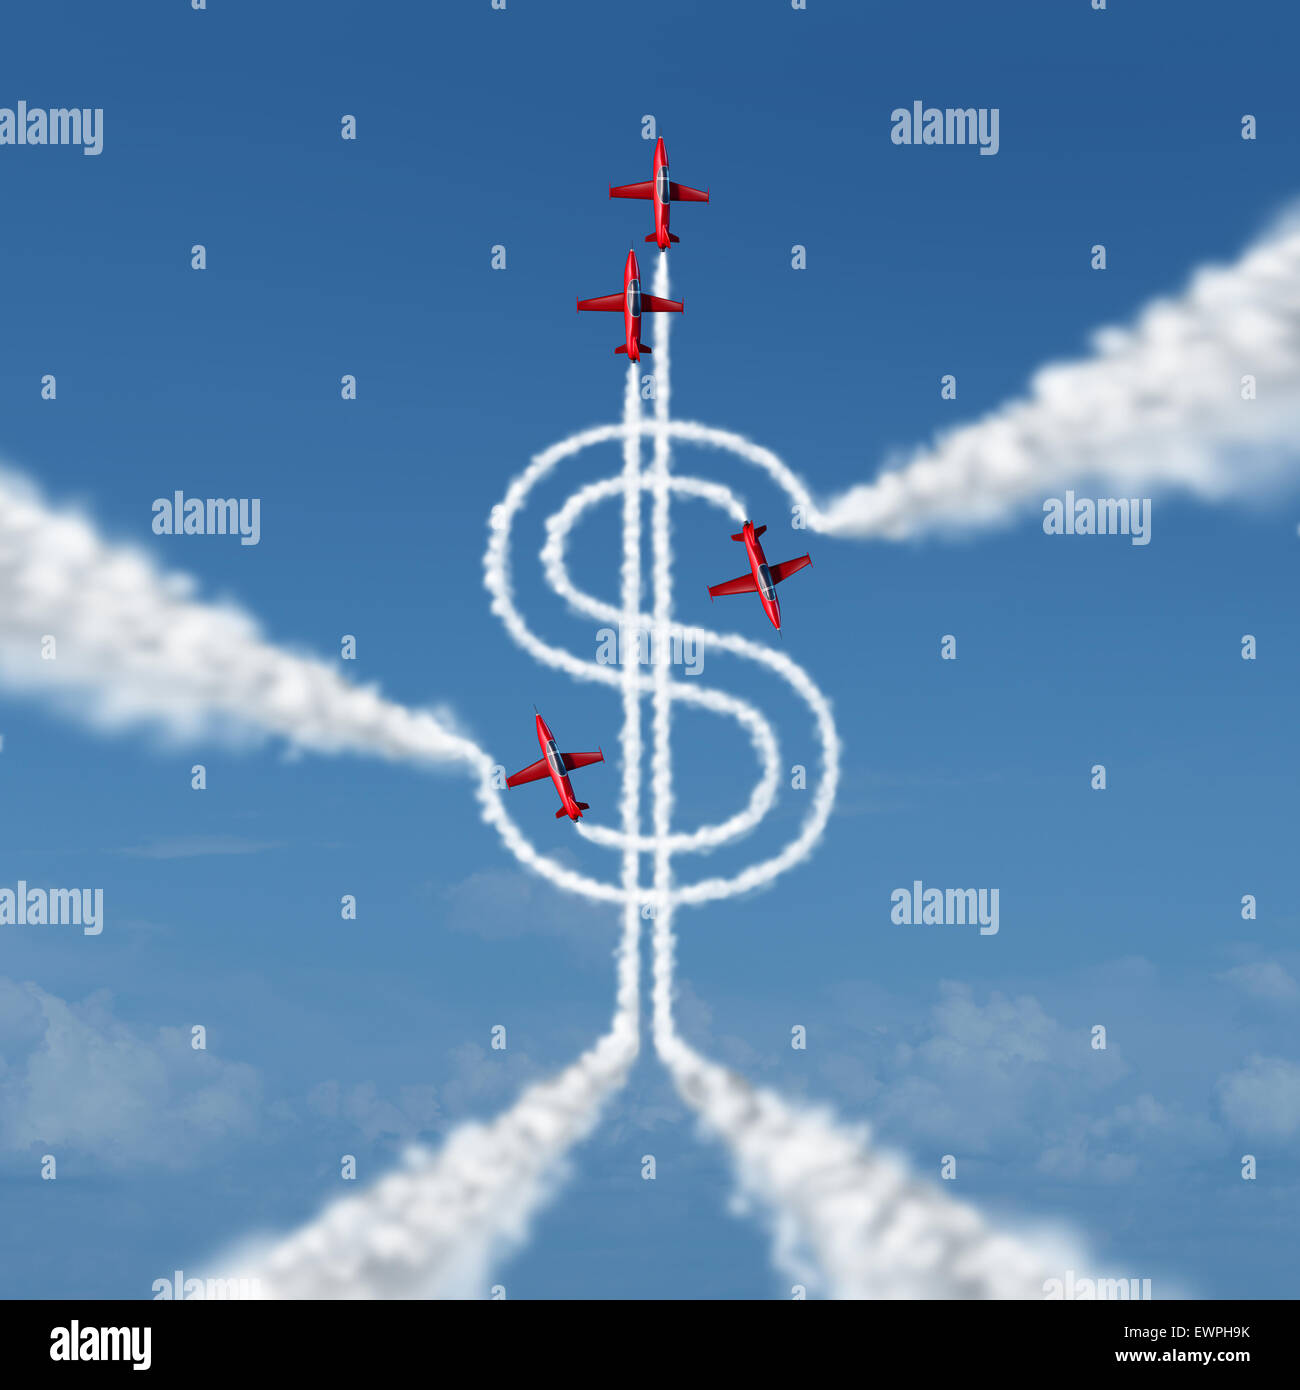 Money achievement concept as a group of acrobatic jets in an airshowor airplanes flying in the sky creating a smoke - Stock Image